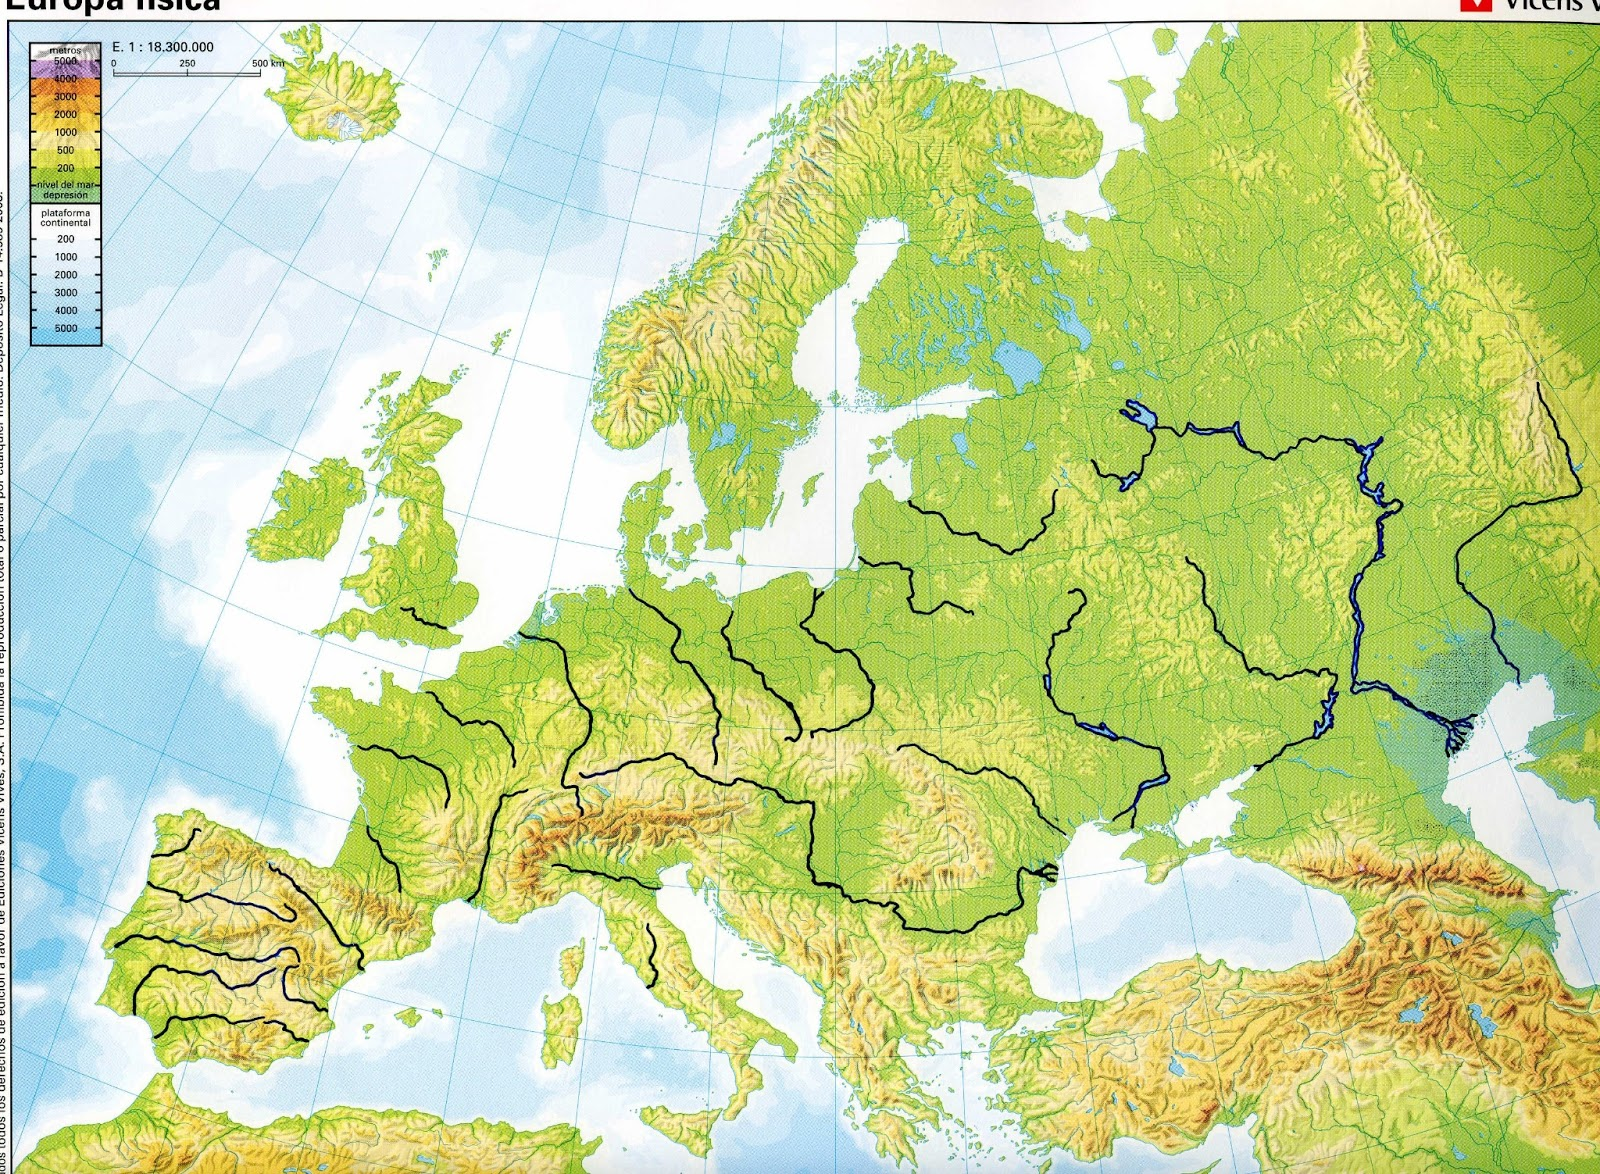 Geography and history blog wednesday maps review europe wednesday maps review europe gumiabroncs Gallery